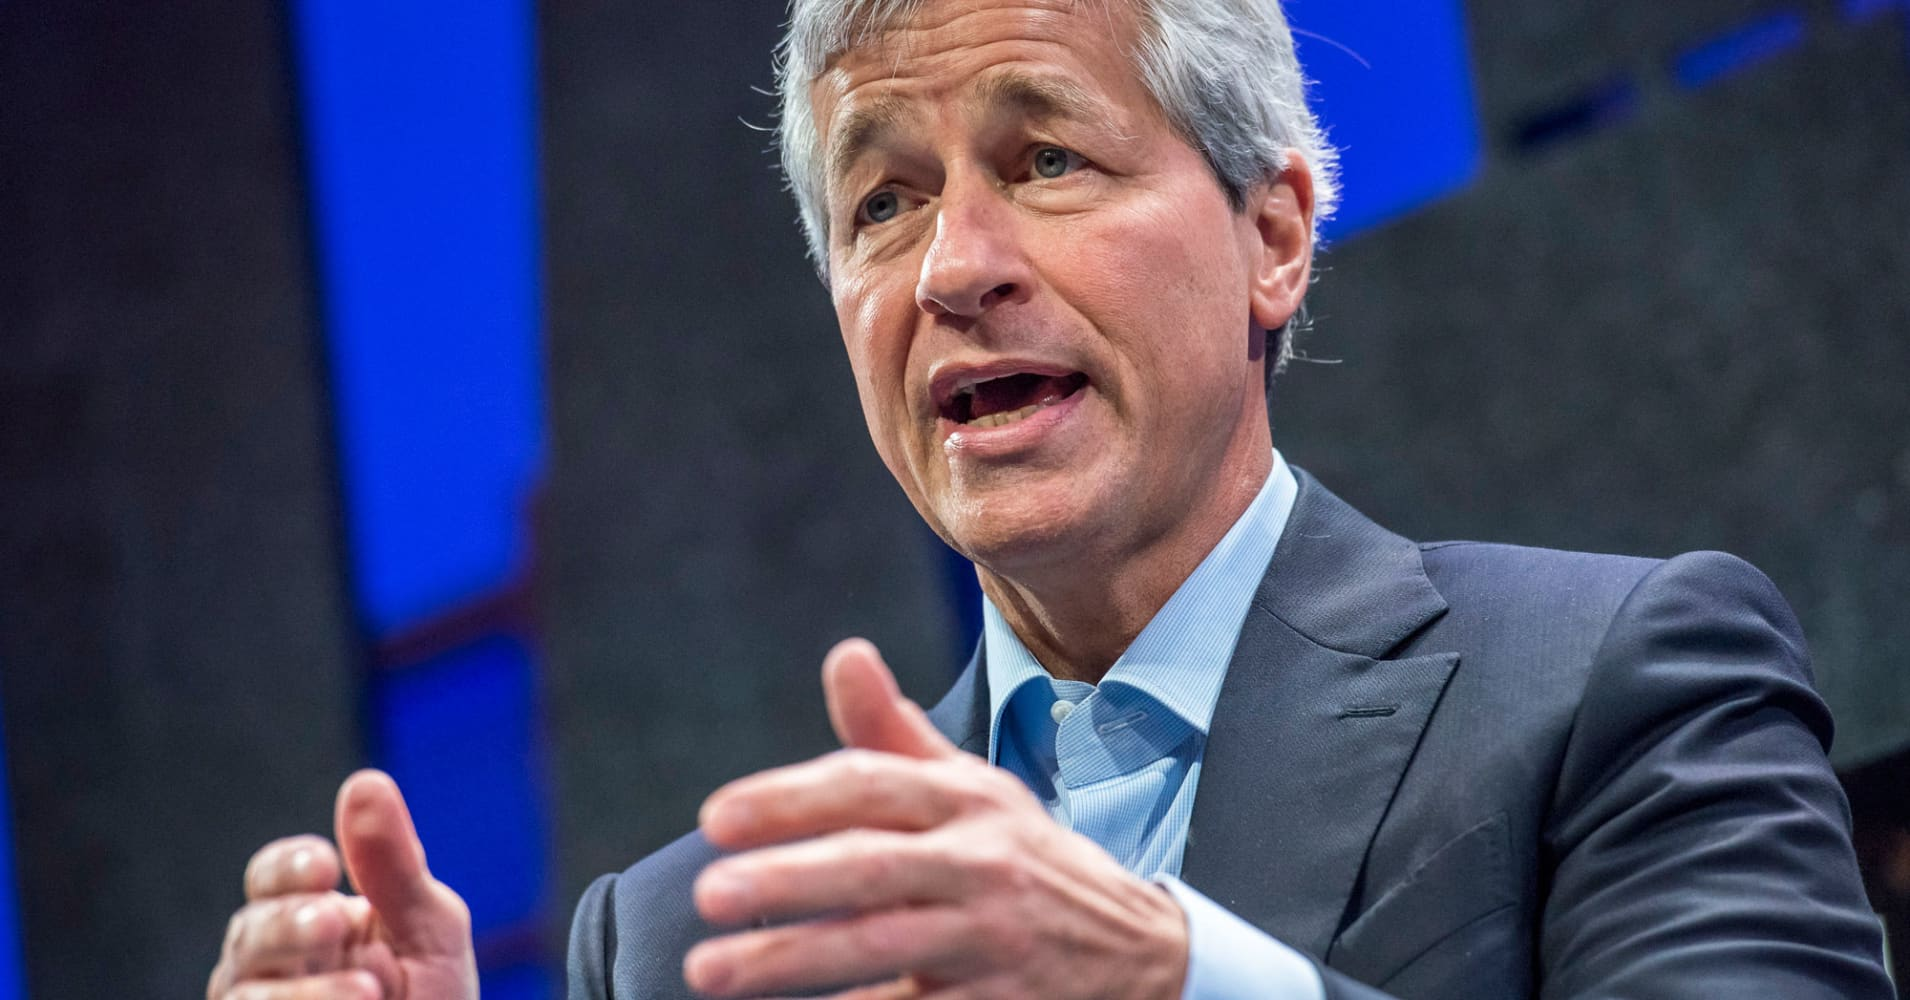 JPMorgan Chase earnings report beats on top and bottom lines